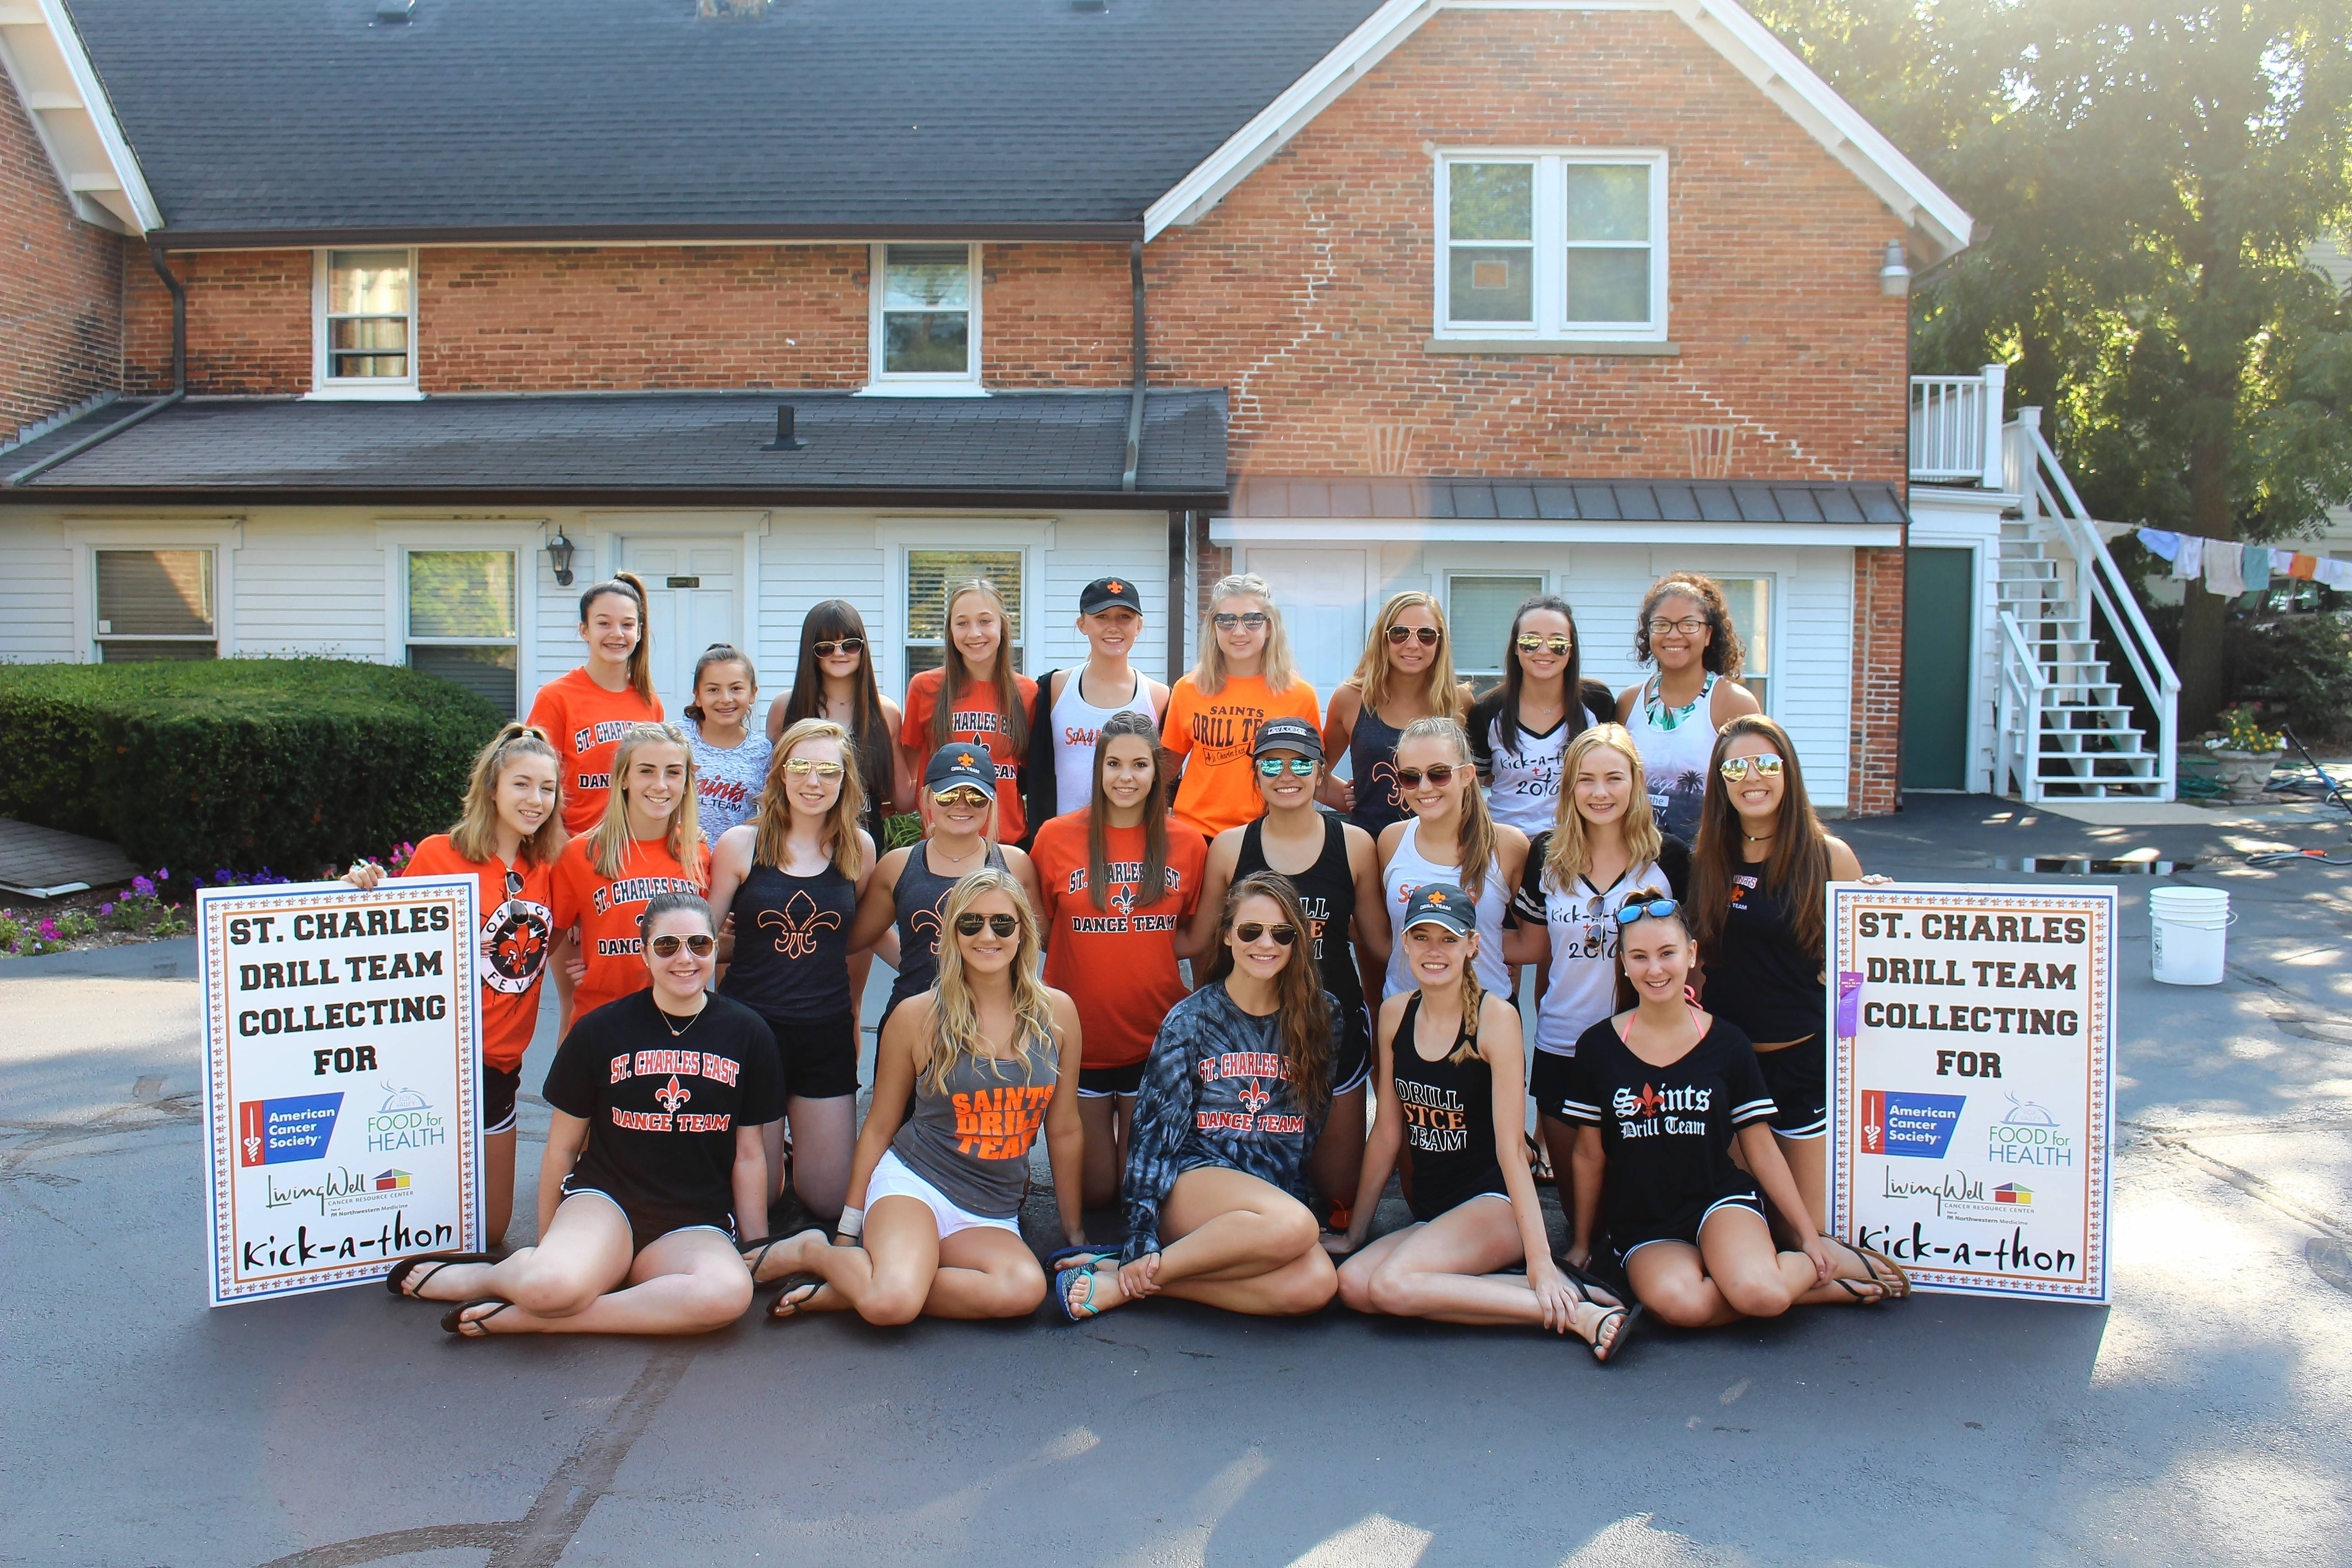 The St. Charles East drill team will be joining with the St. Charles North team in a car wash fundraiser on Saturday and Sunday, Aug. 25-26, as part of the 25th annual Kick-A-Thon to raise money to help fight cancer.